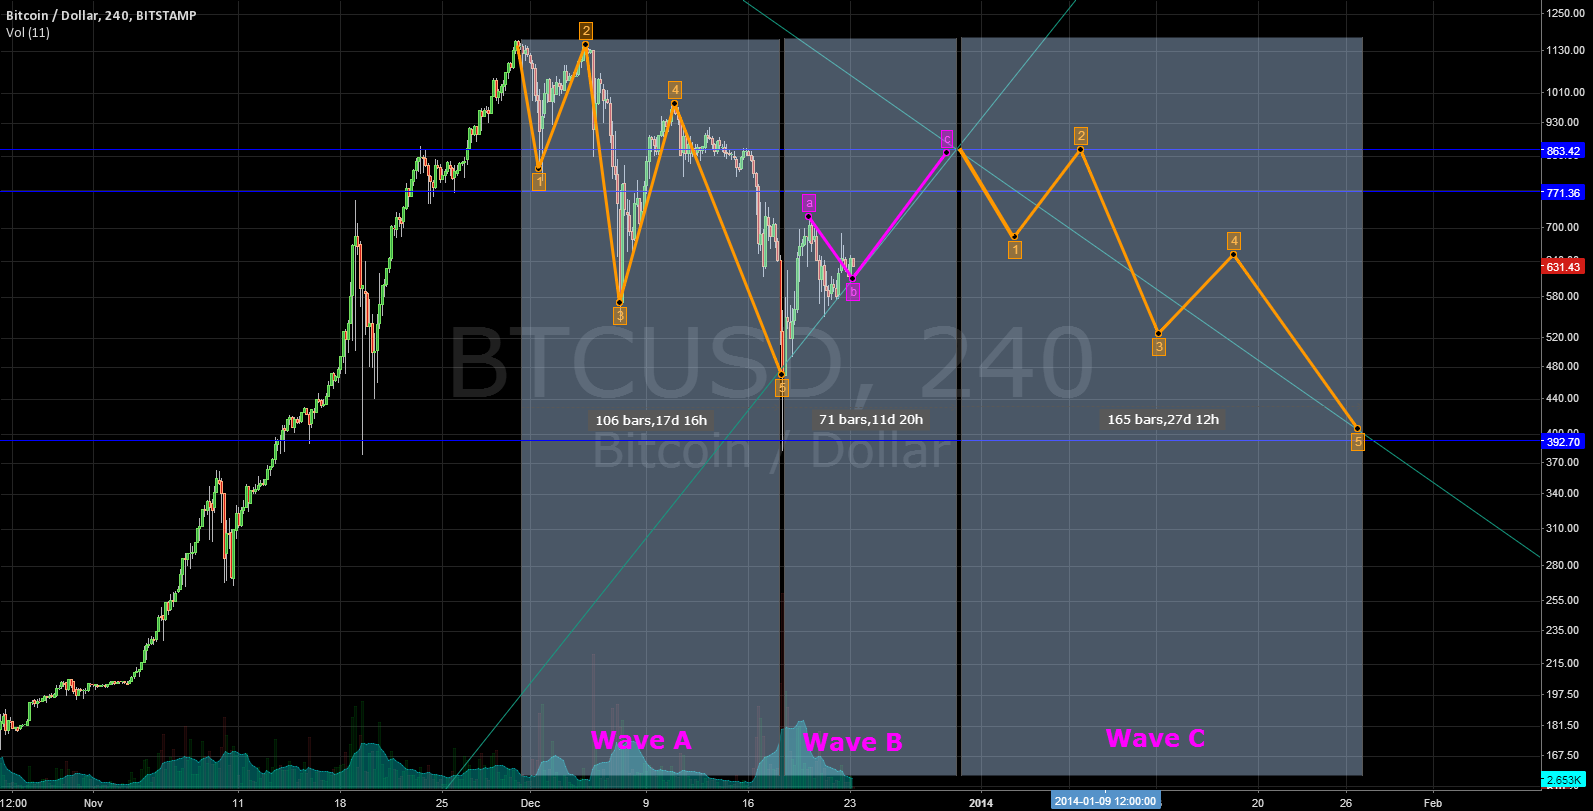 In wave B of  the correction